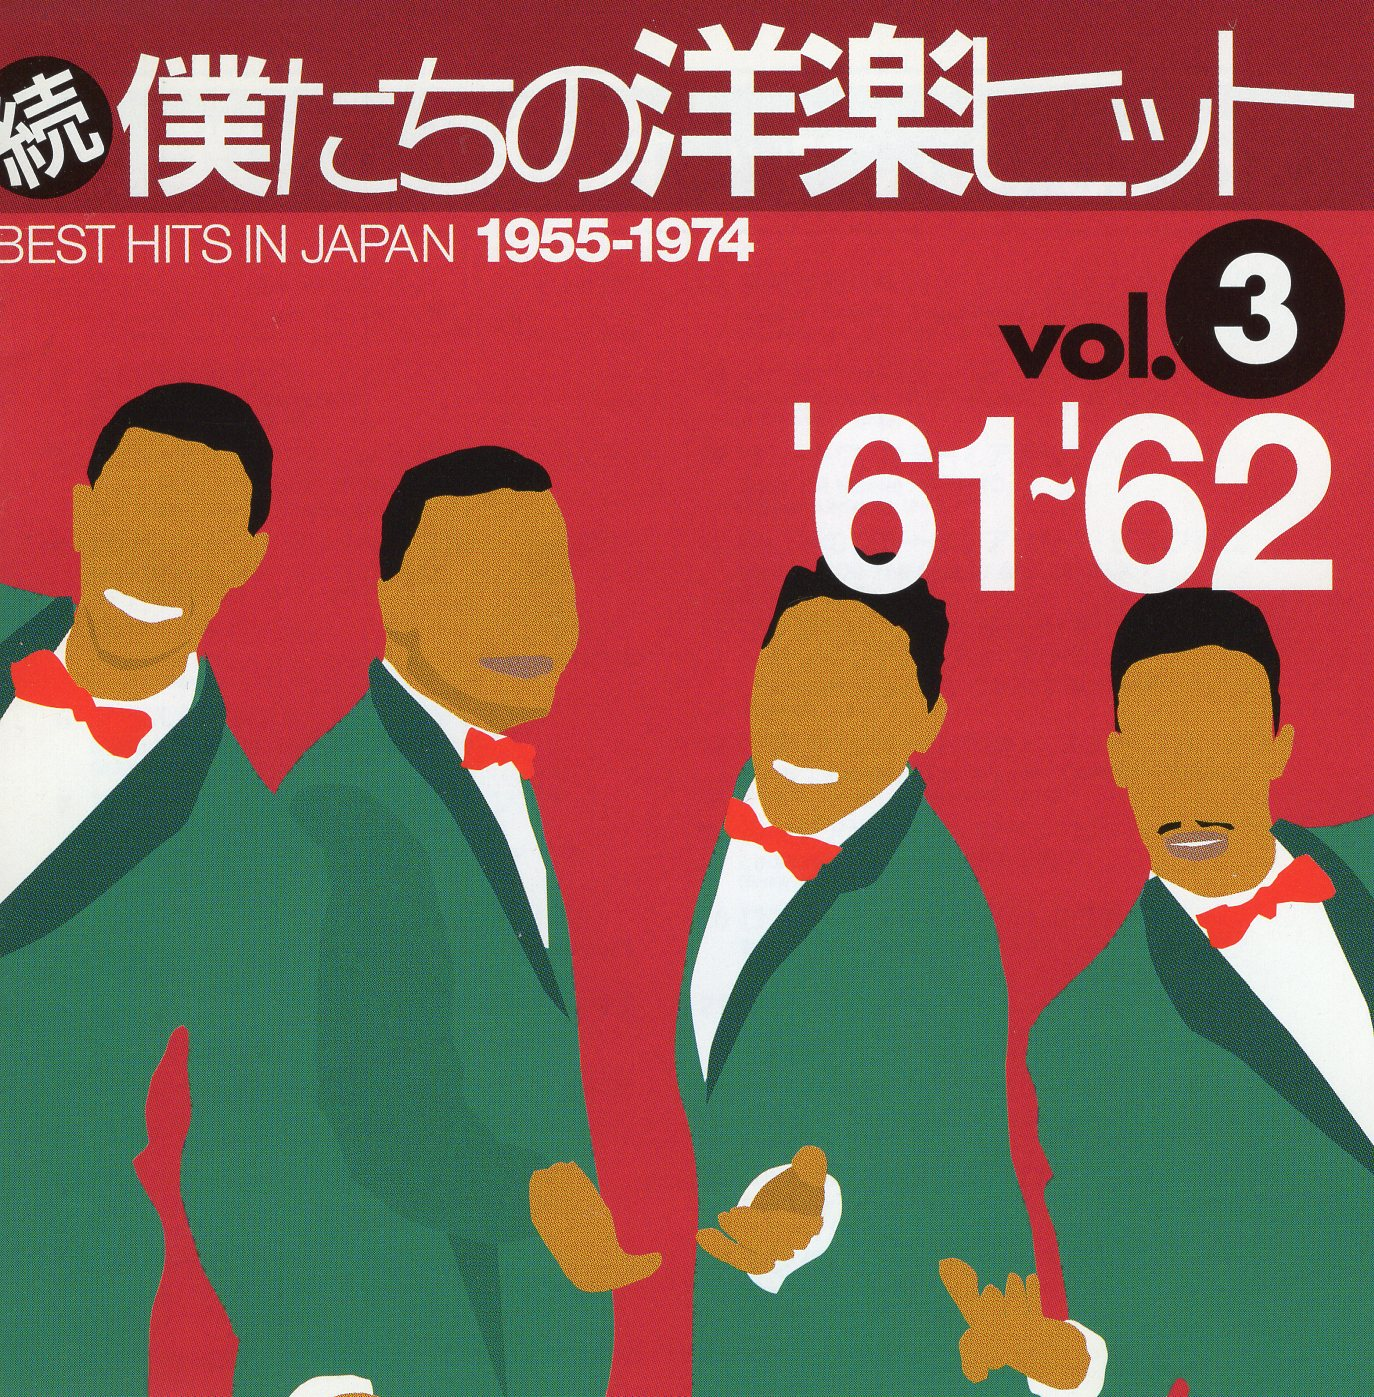 """The Best Hits in Japan 1955-1974 Vol.3"""